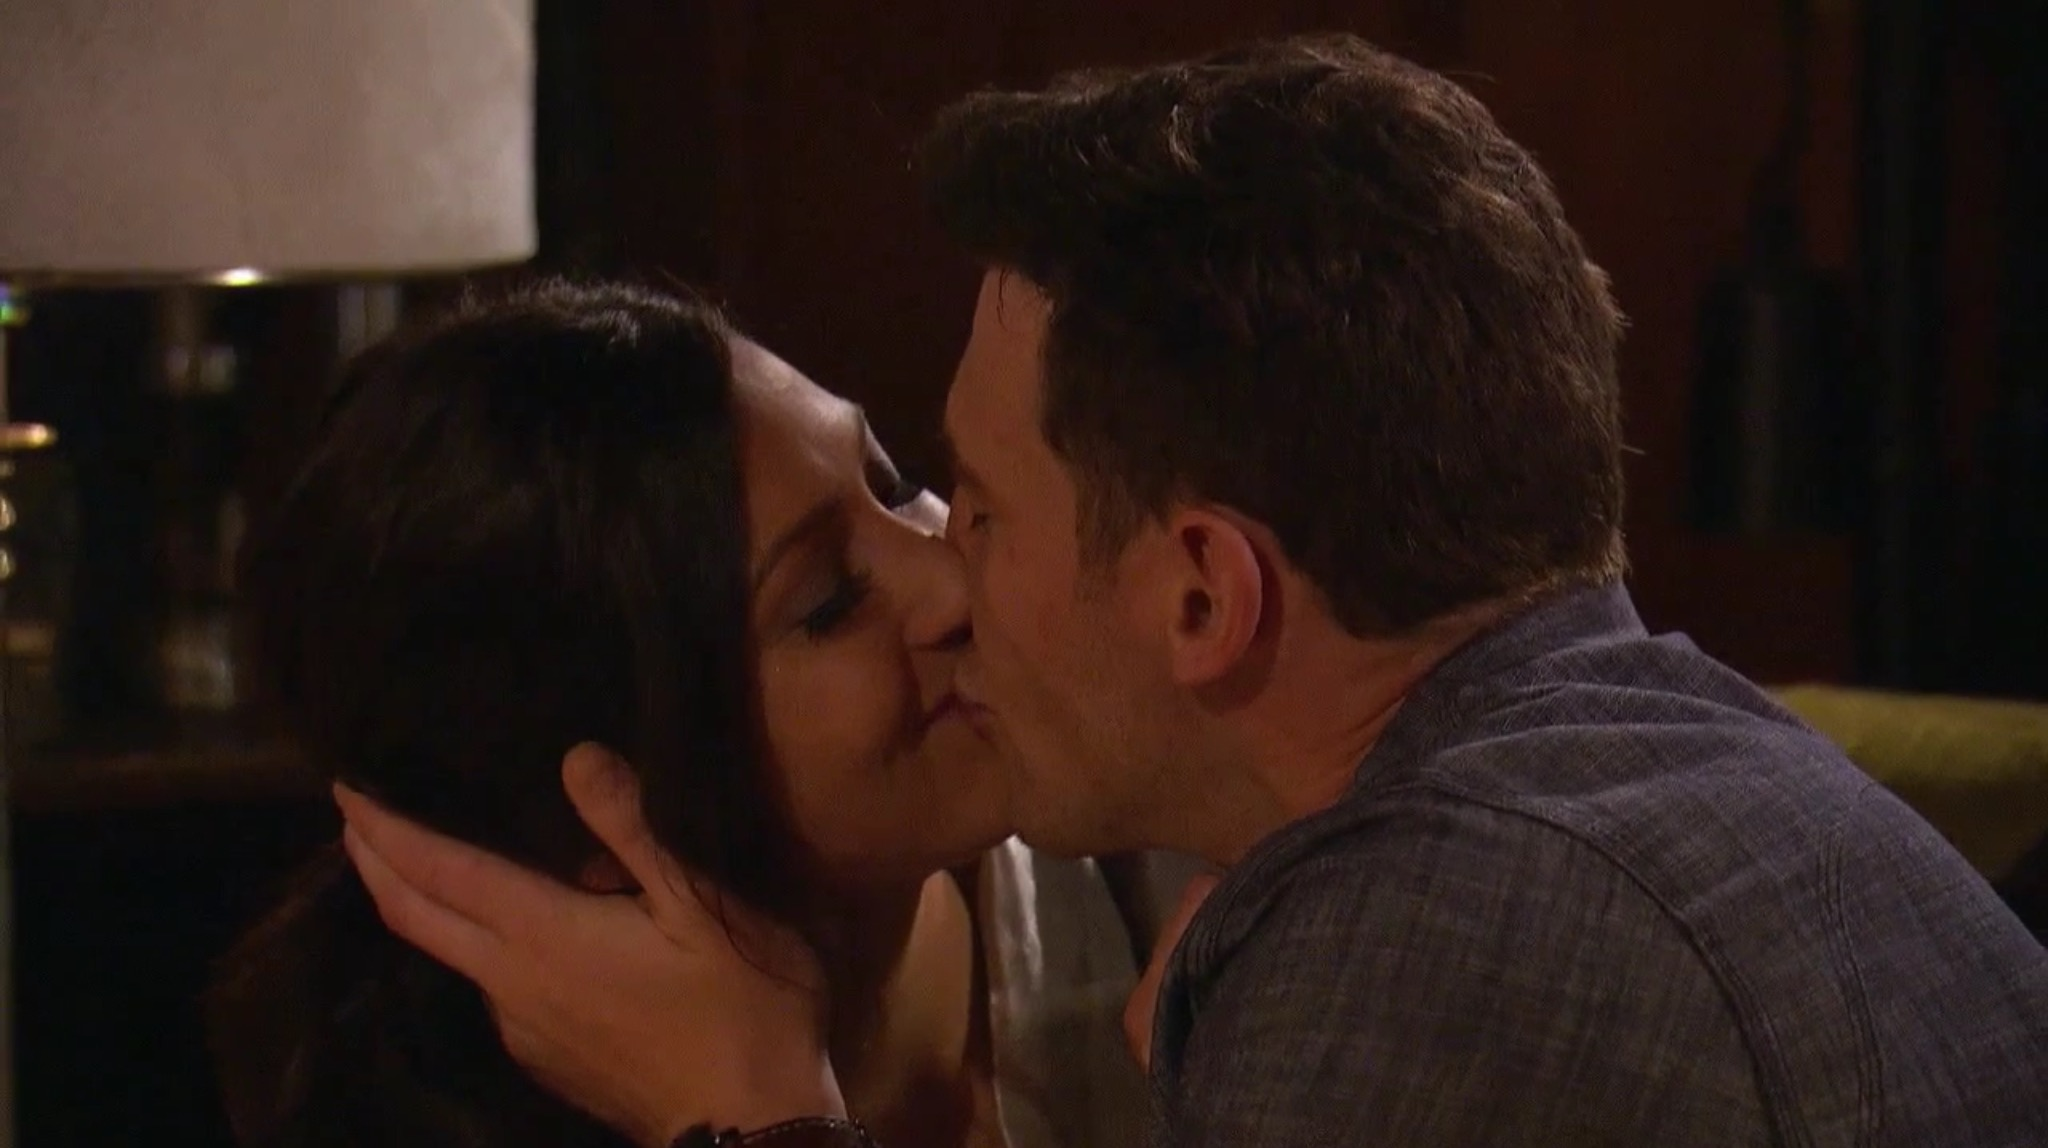 Bachelorette 14 - Becca Kufrin - ScreenCaps - NO Discussion - *Sleuthing Spoilers* Image299